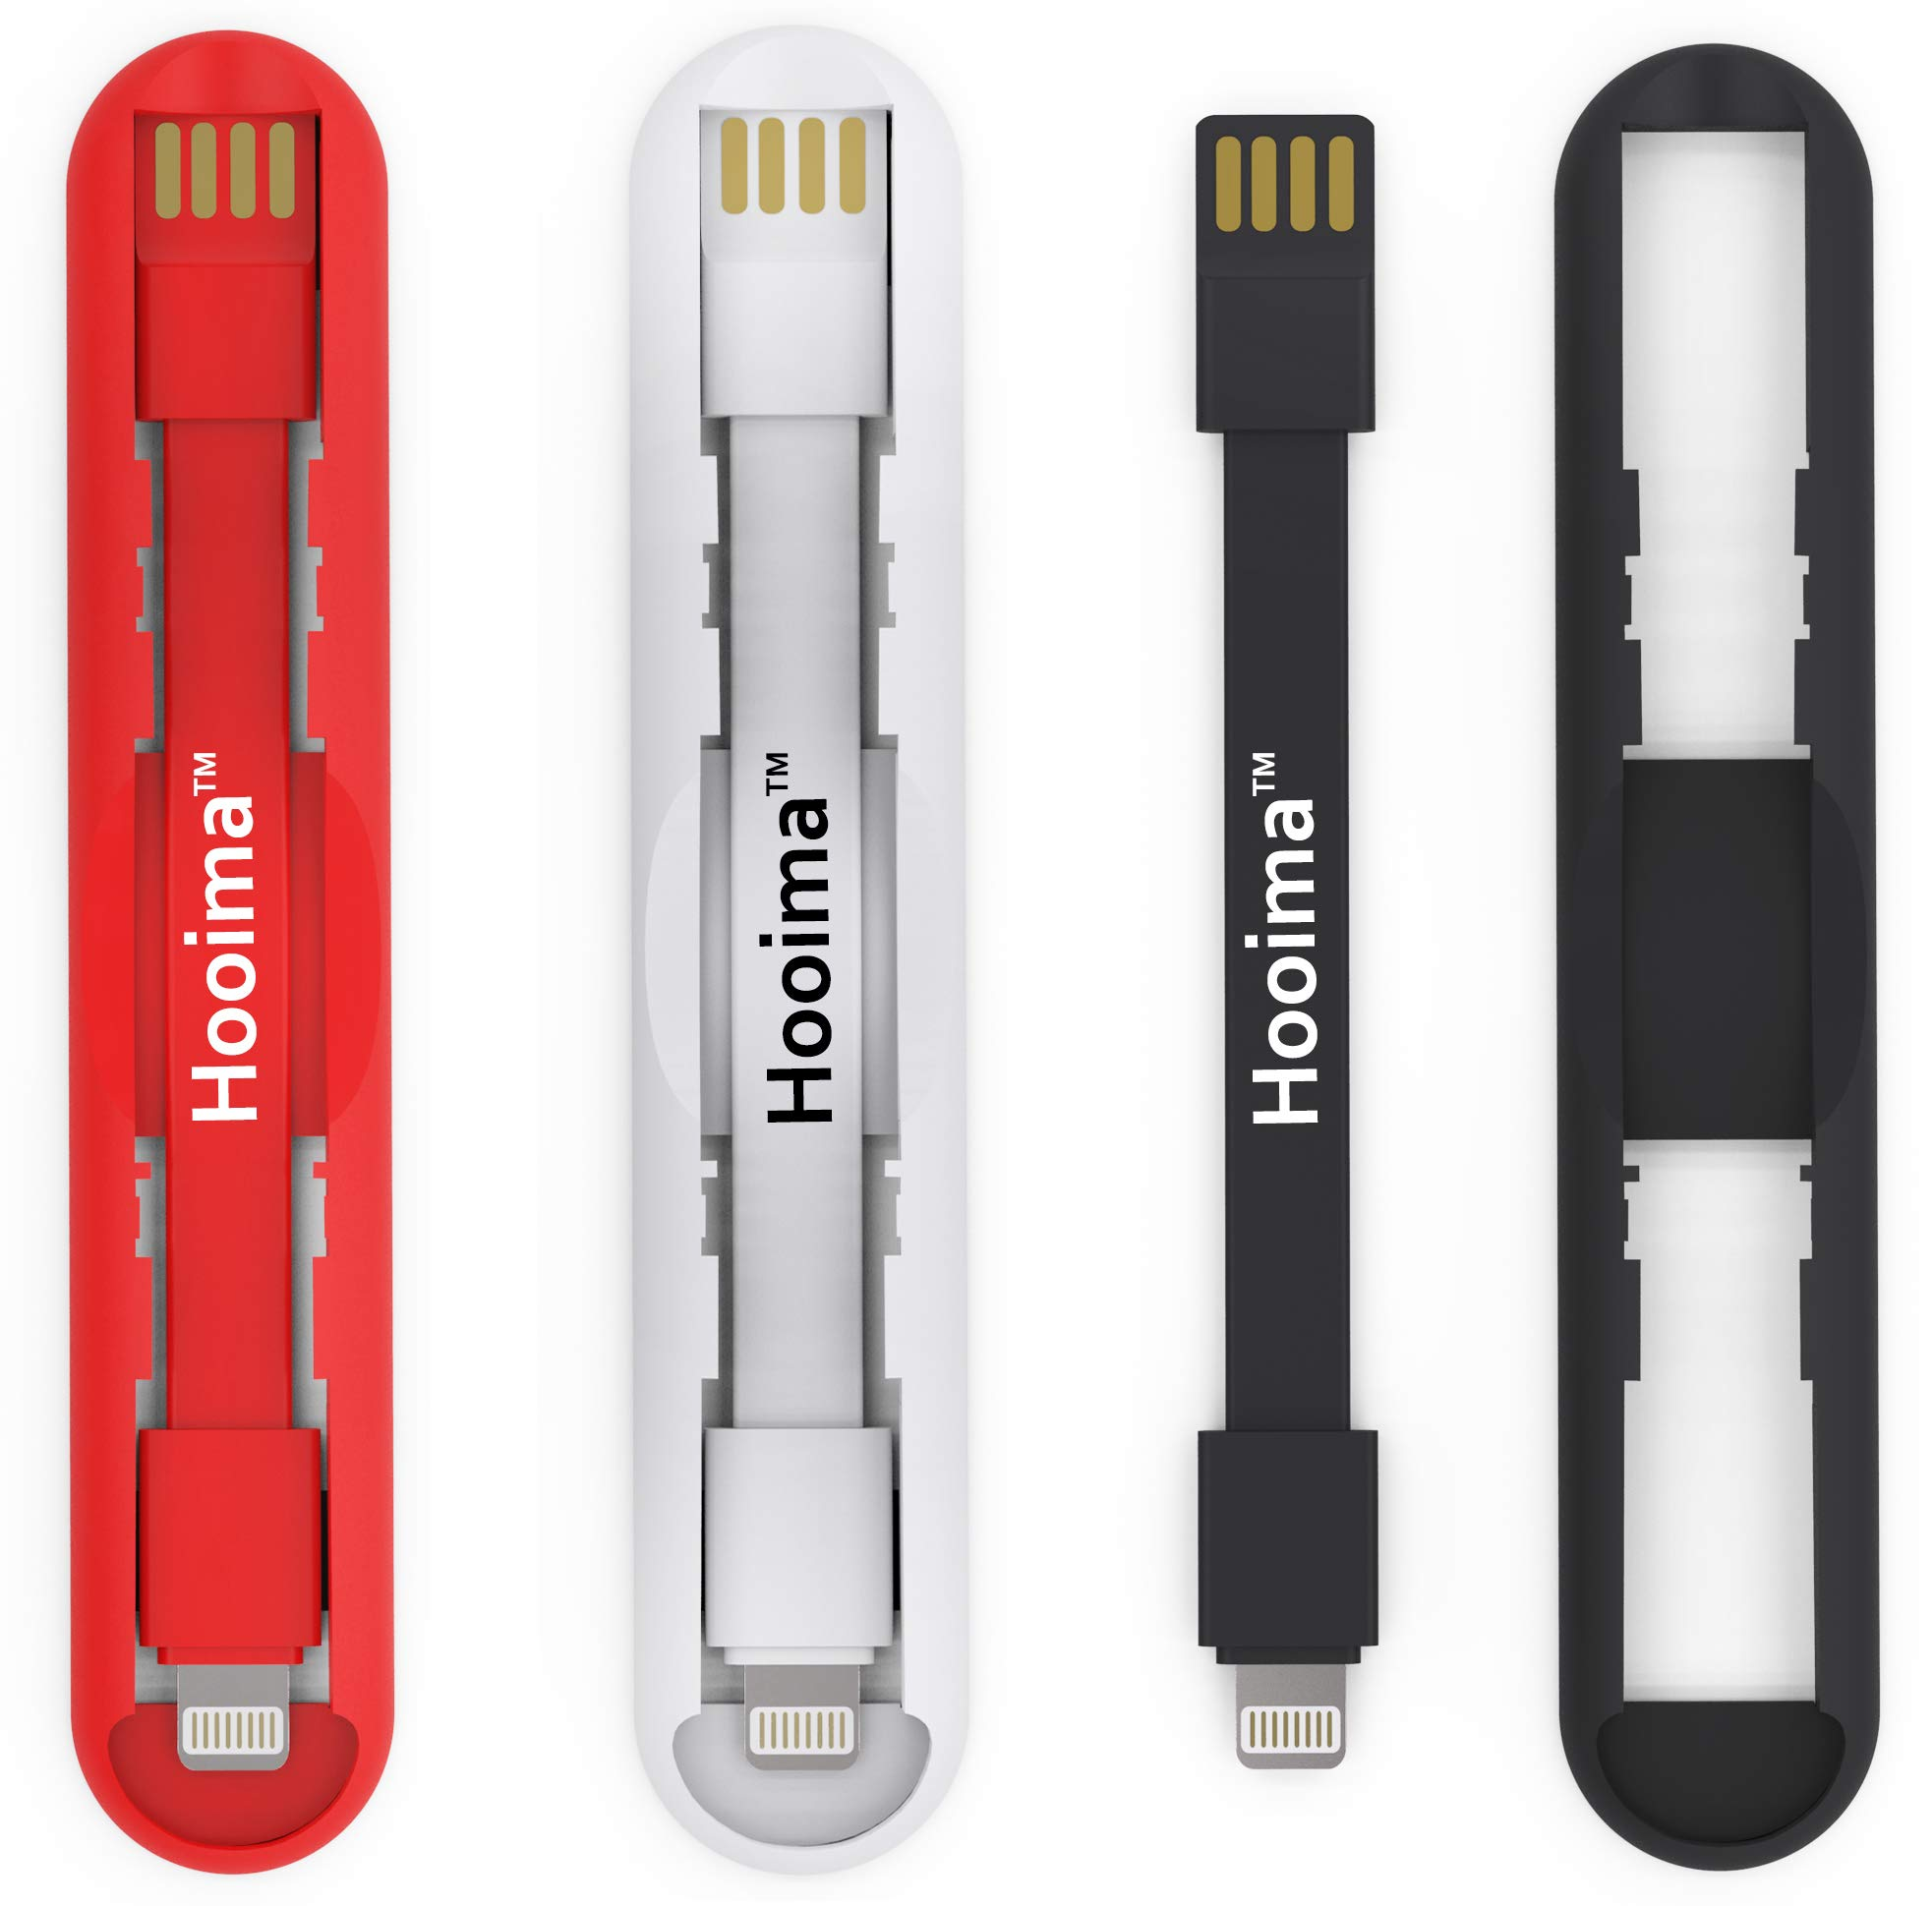 Hooima PowerGrip - Short USB to 8-Pins Cable with a Strong Self-Adhesive - Compatible with iPhone & Apple Devices - Easily Mount to Any Flat Surface - Fast Charging & Data Transfer Pack of 3 Colors